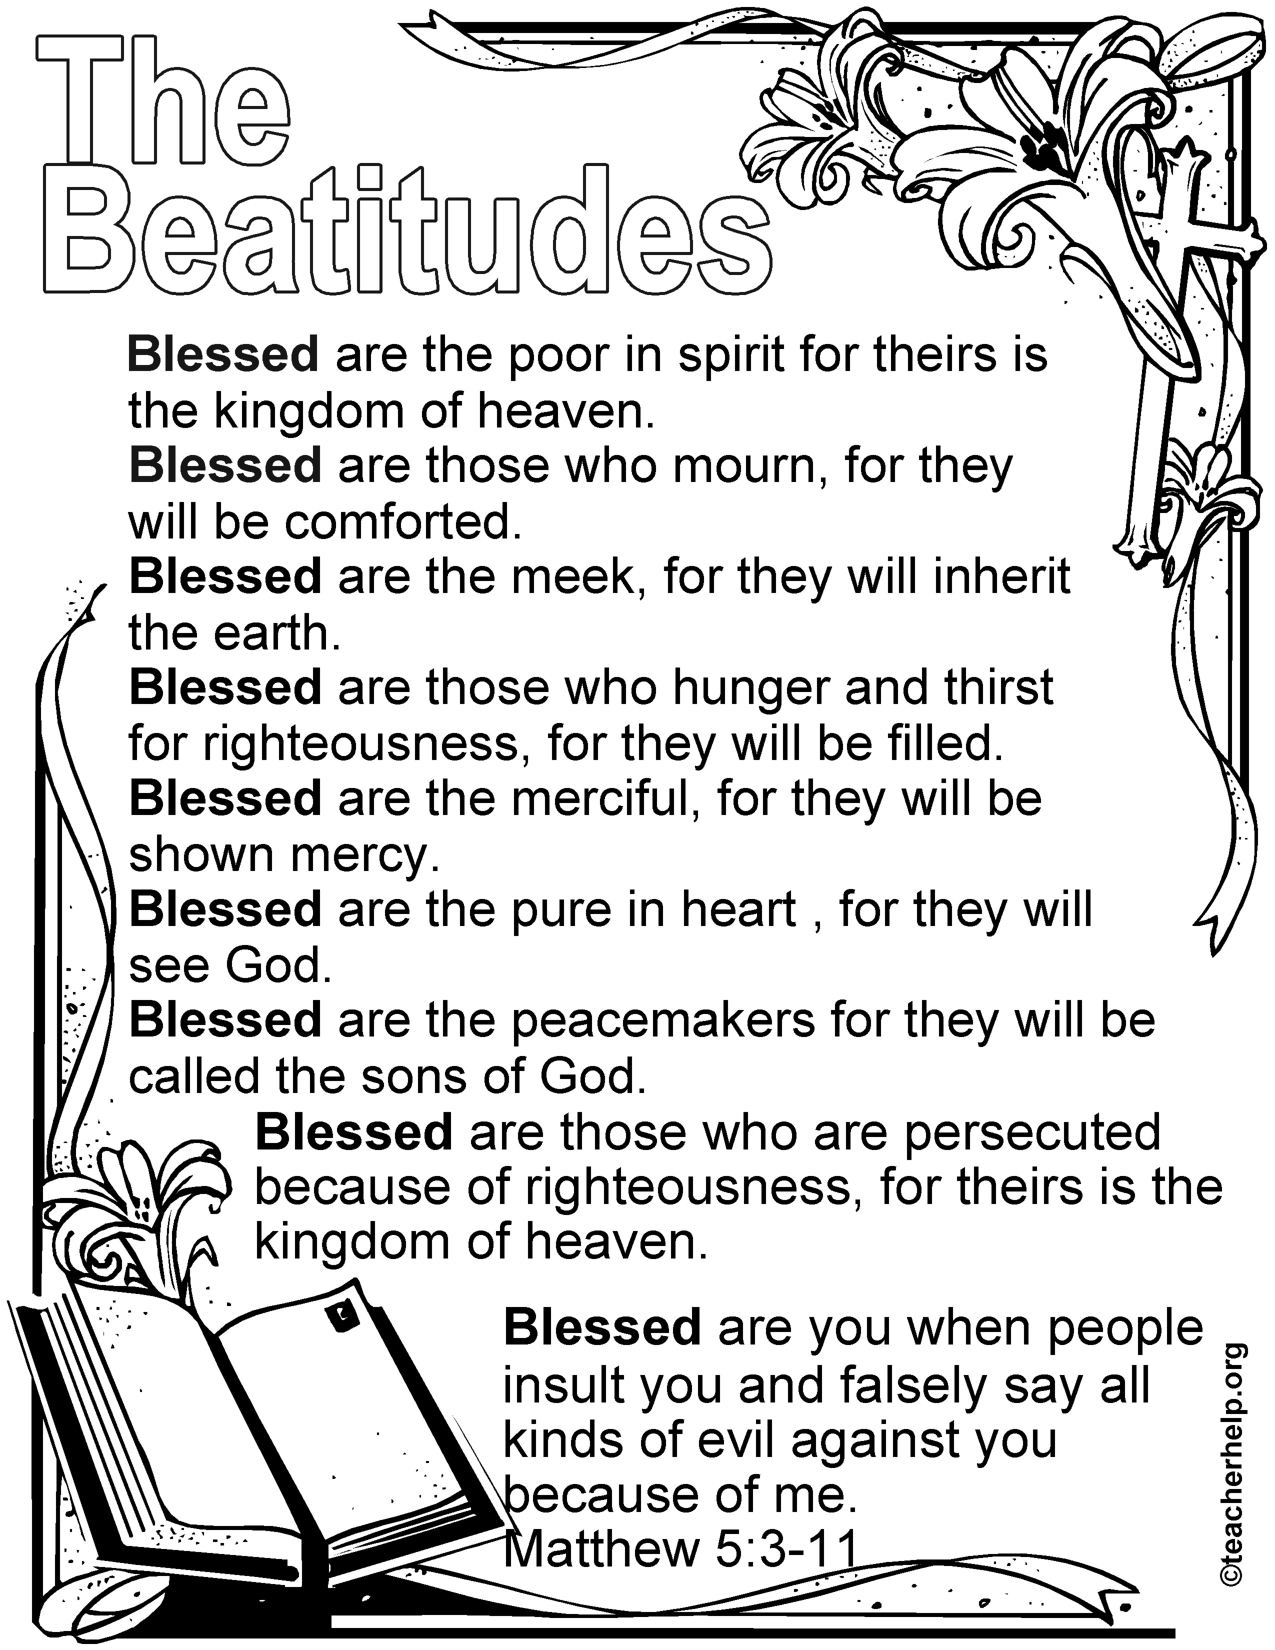 Image Result For Beatitudes For Kids Free Printable | Kids - Free Printable Bible Lessons For Toddlers